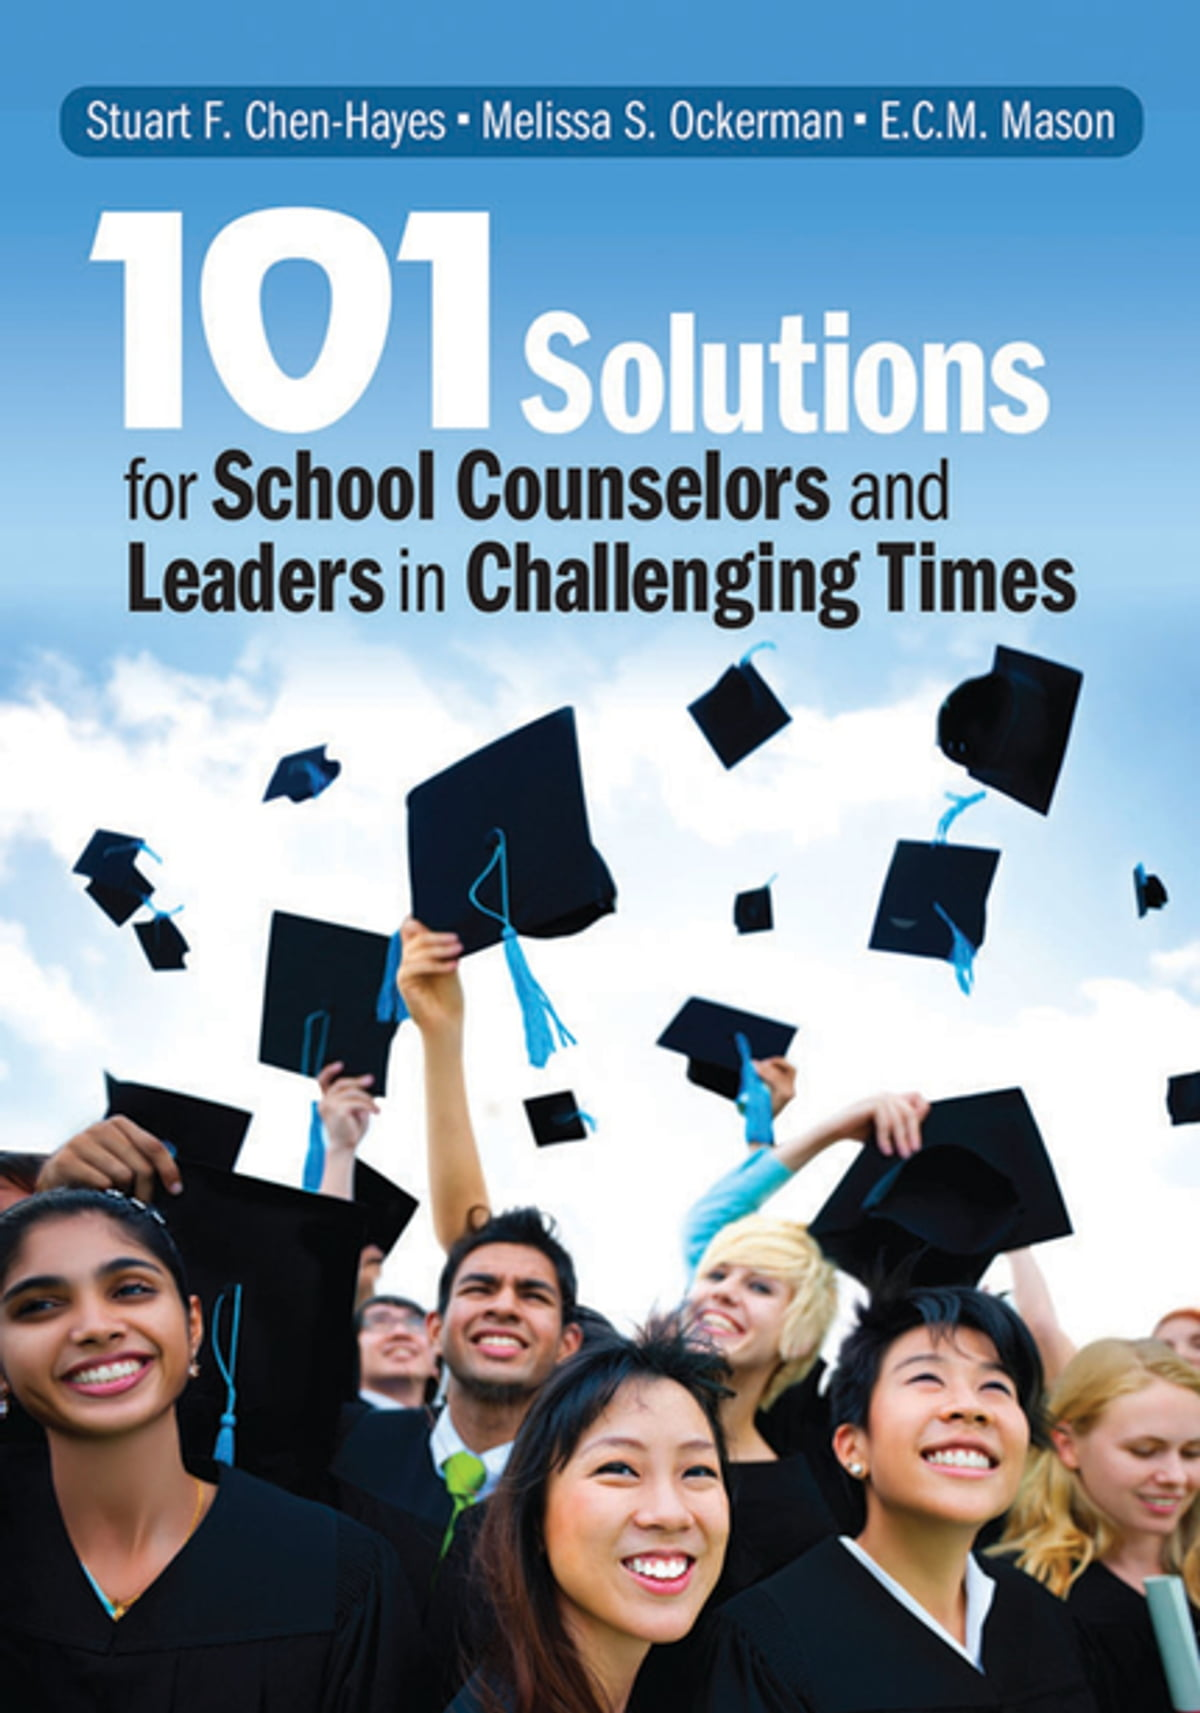 101 Solutions for School Counselors and Leaders in Challenging Times eBook  by Dr. Stuart F. Chen-Hayes - 9781483345949 | Rakuten Kobo